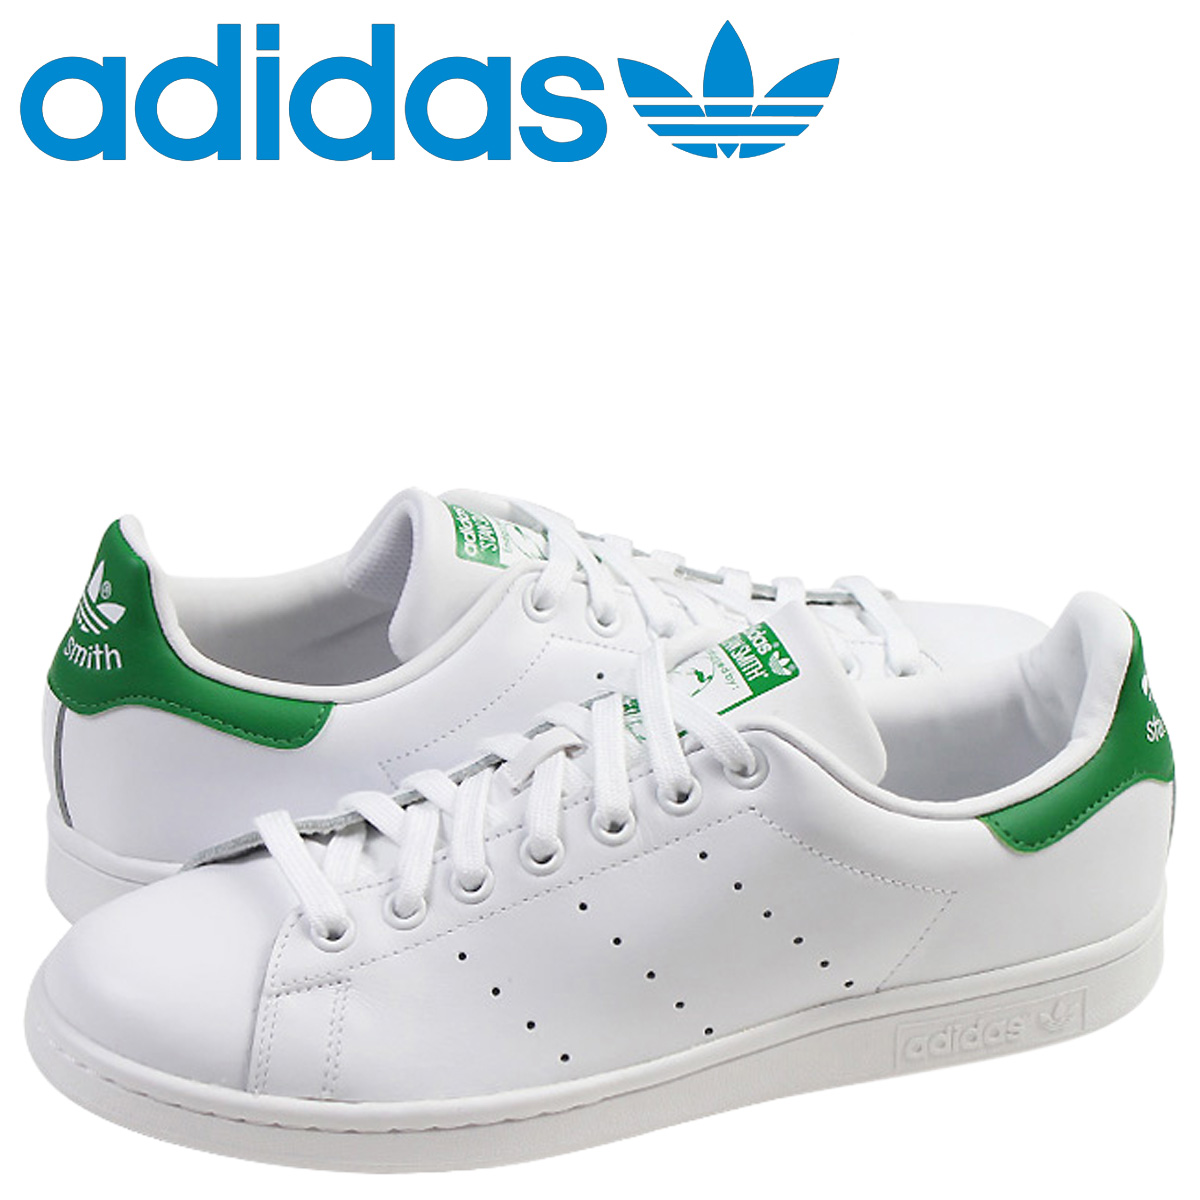 allsports: [complet] adidas originals smith adidas originals stan smith originals e6c5a6